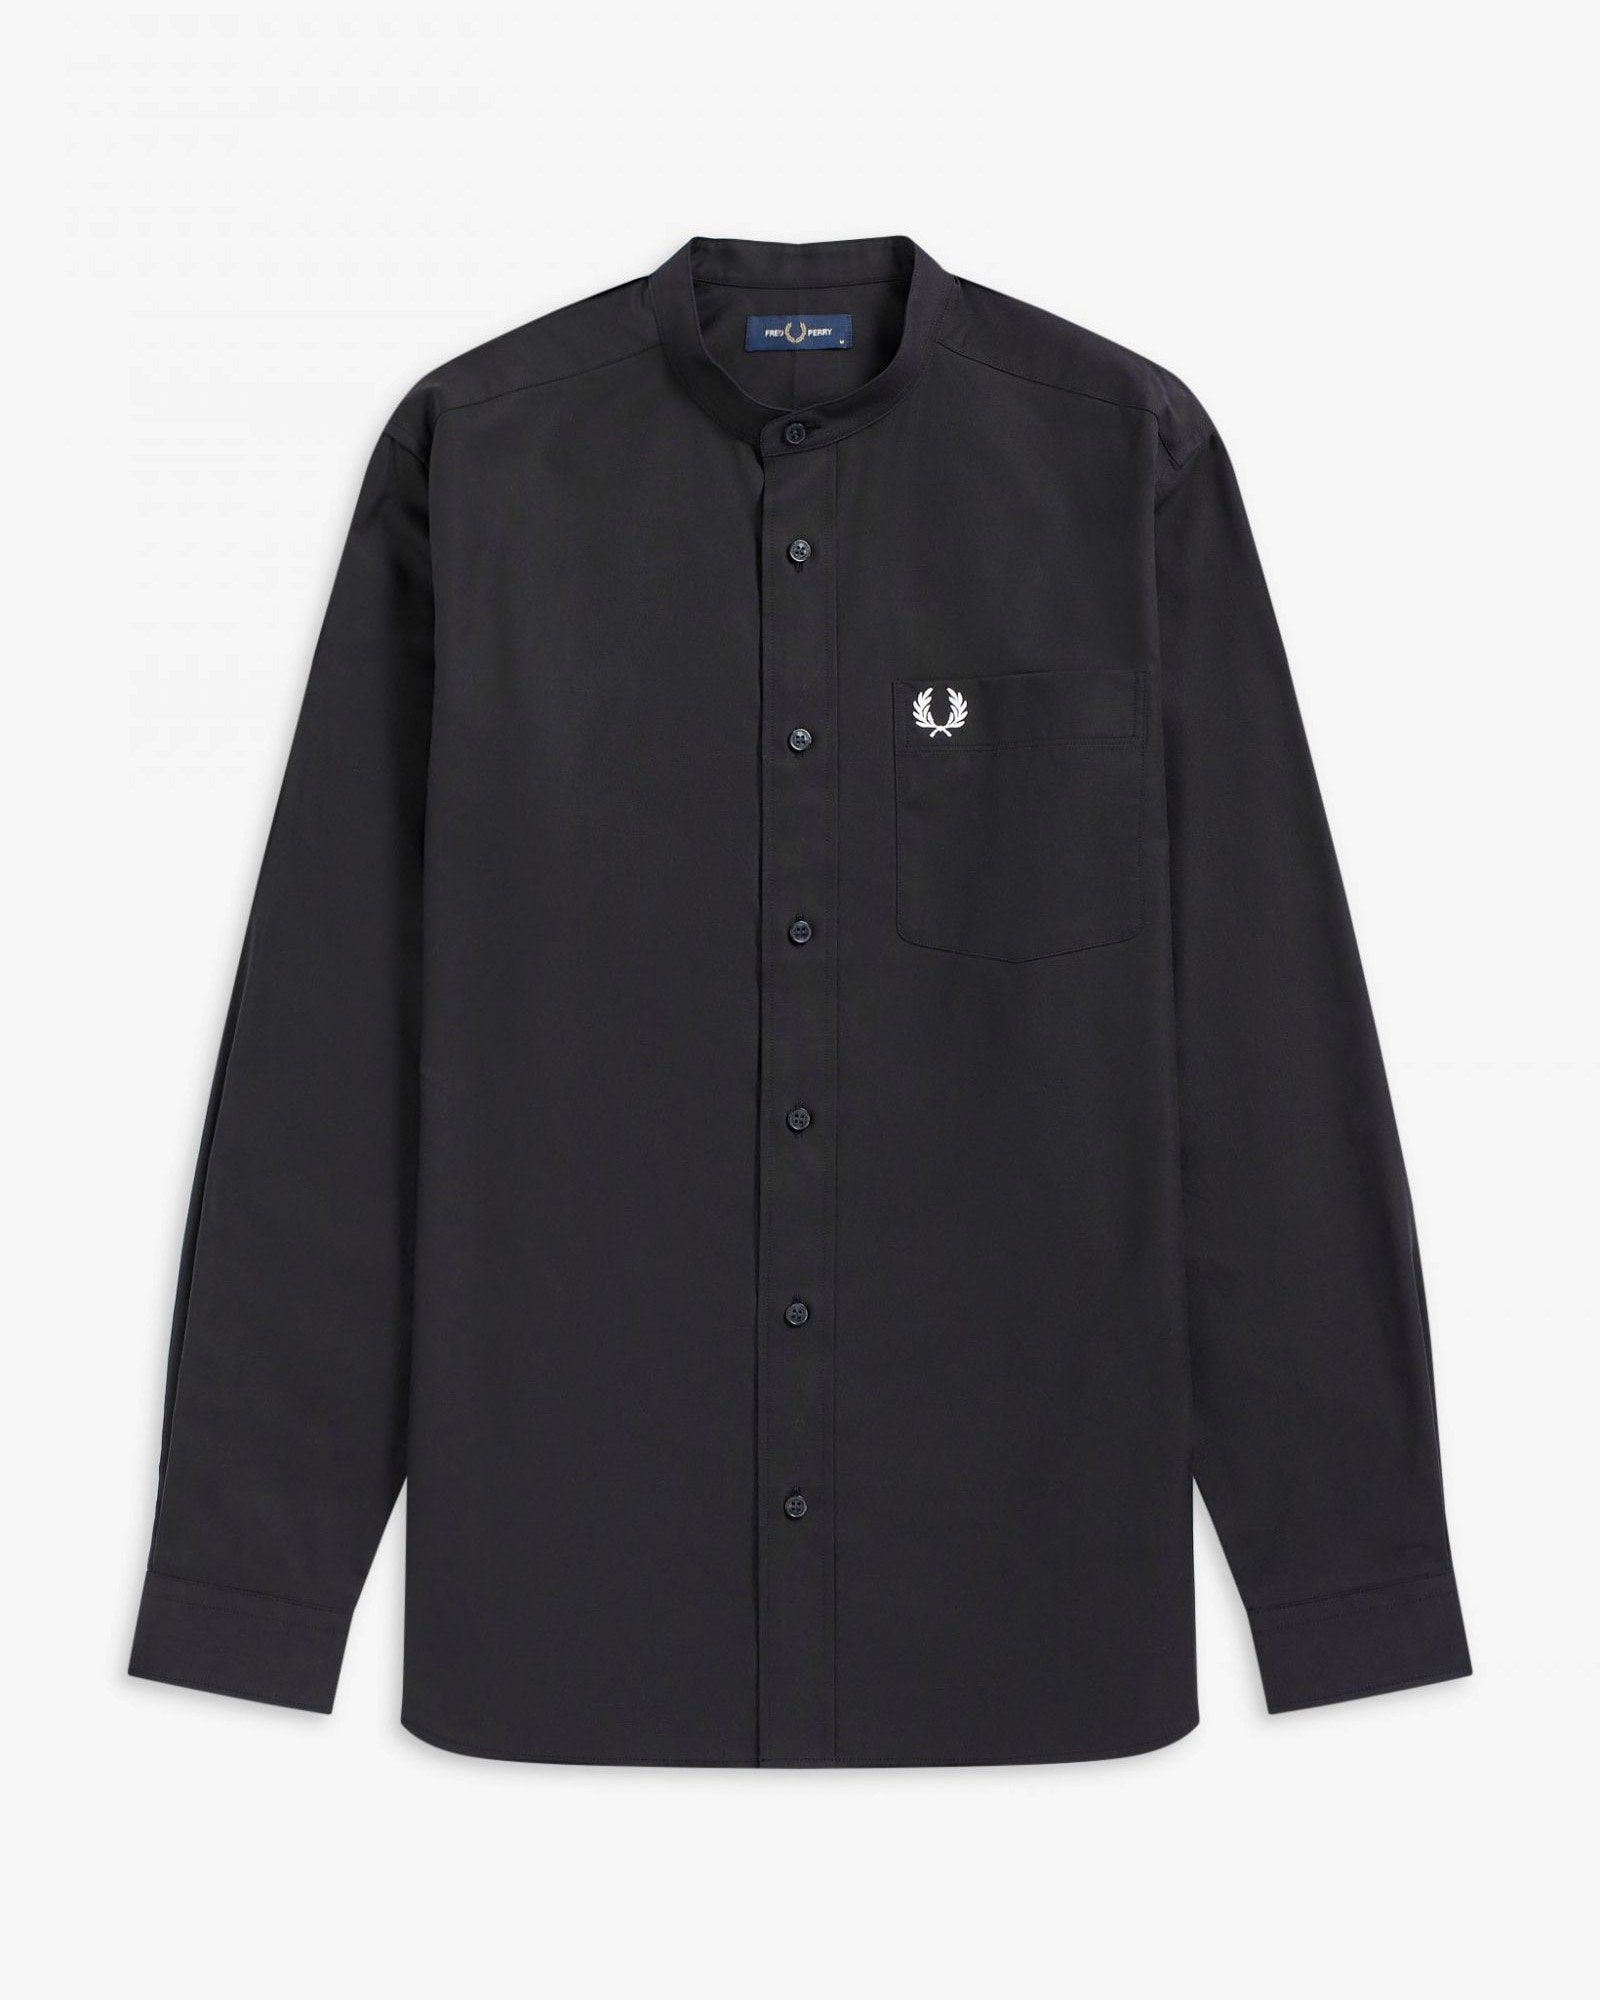 Fred Perry Grandad Collar Shirt - Black M M9603102M 5034605825107 Fred Perry Shirts